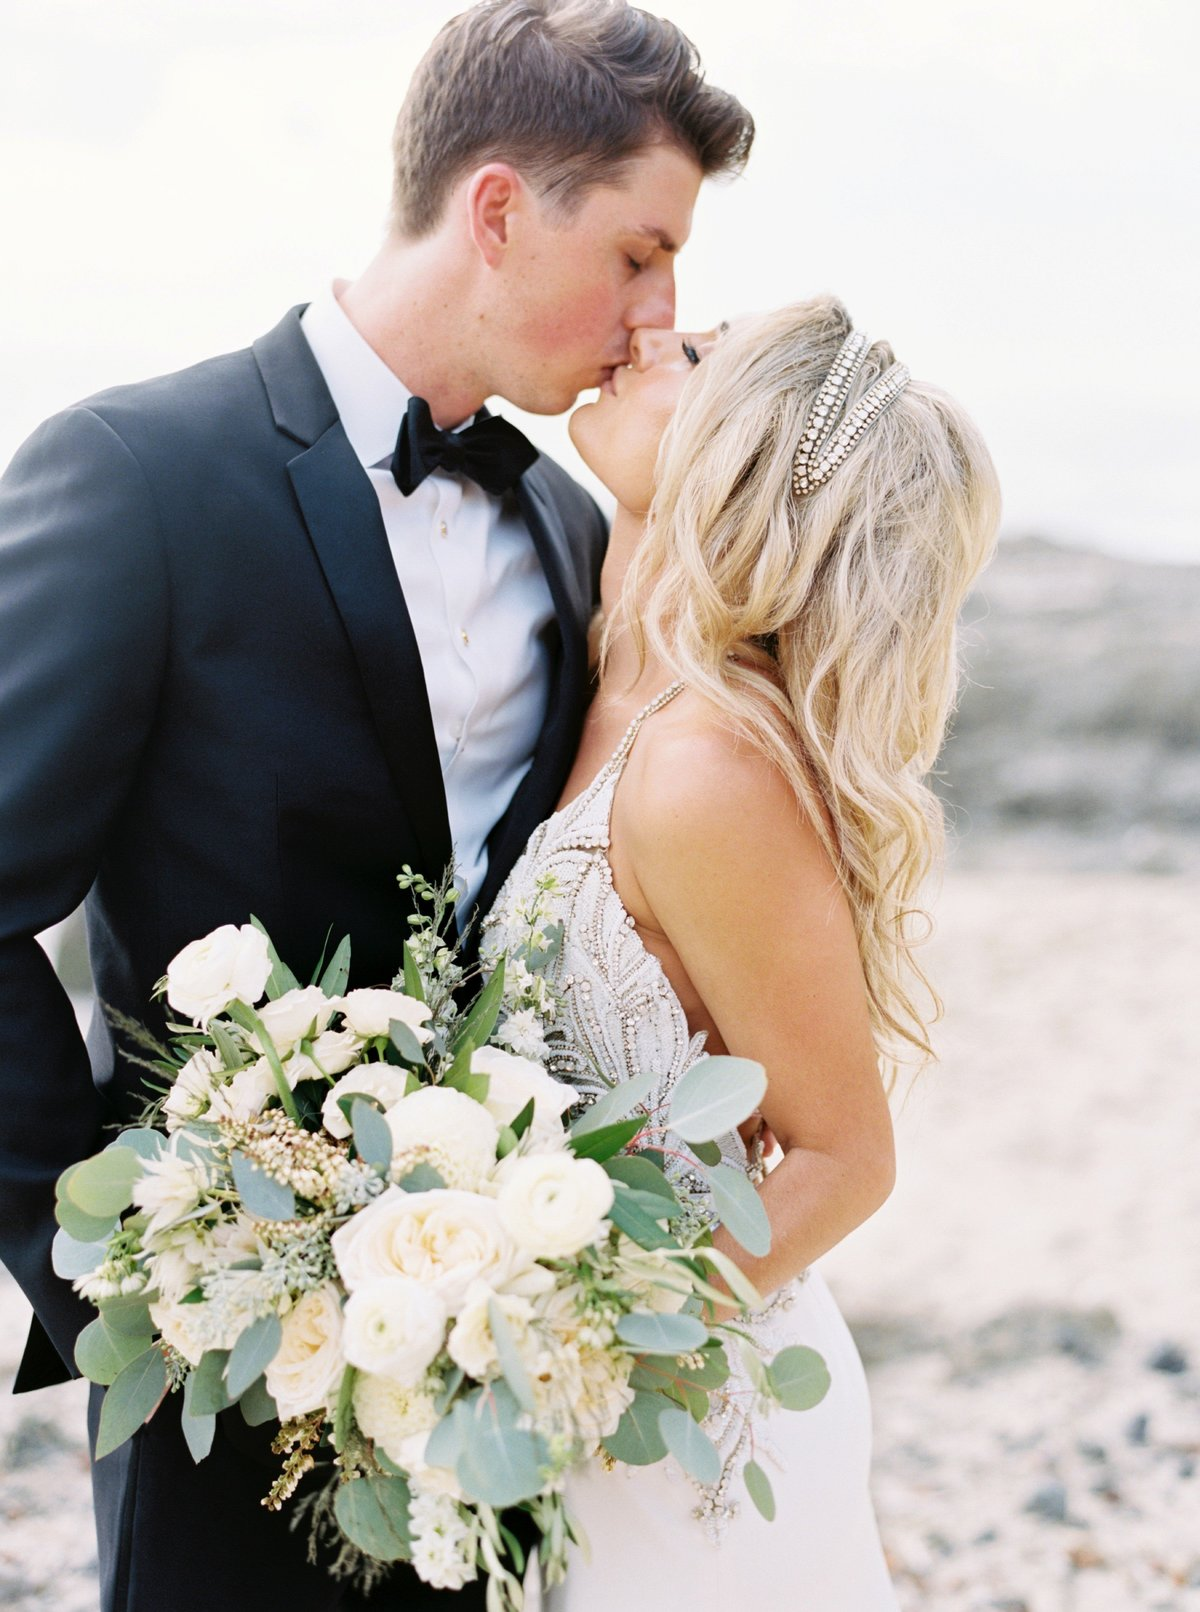 nicoleclareyphotography_evan+jeff_laguna beach_wedding_0015